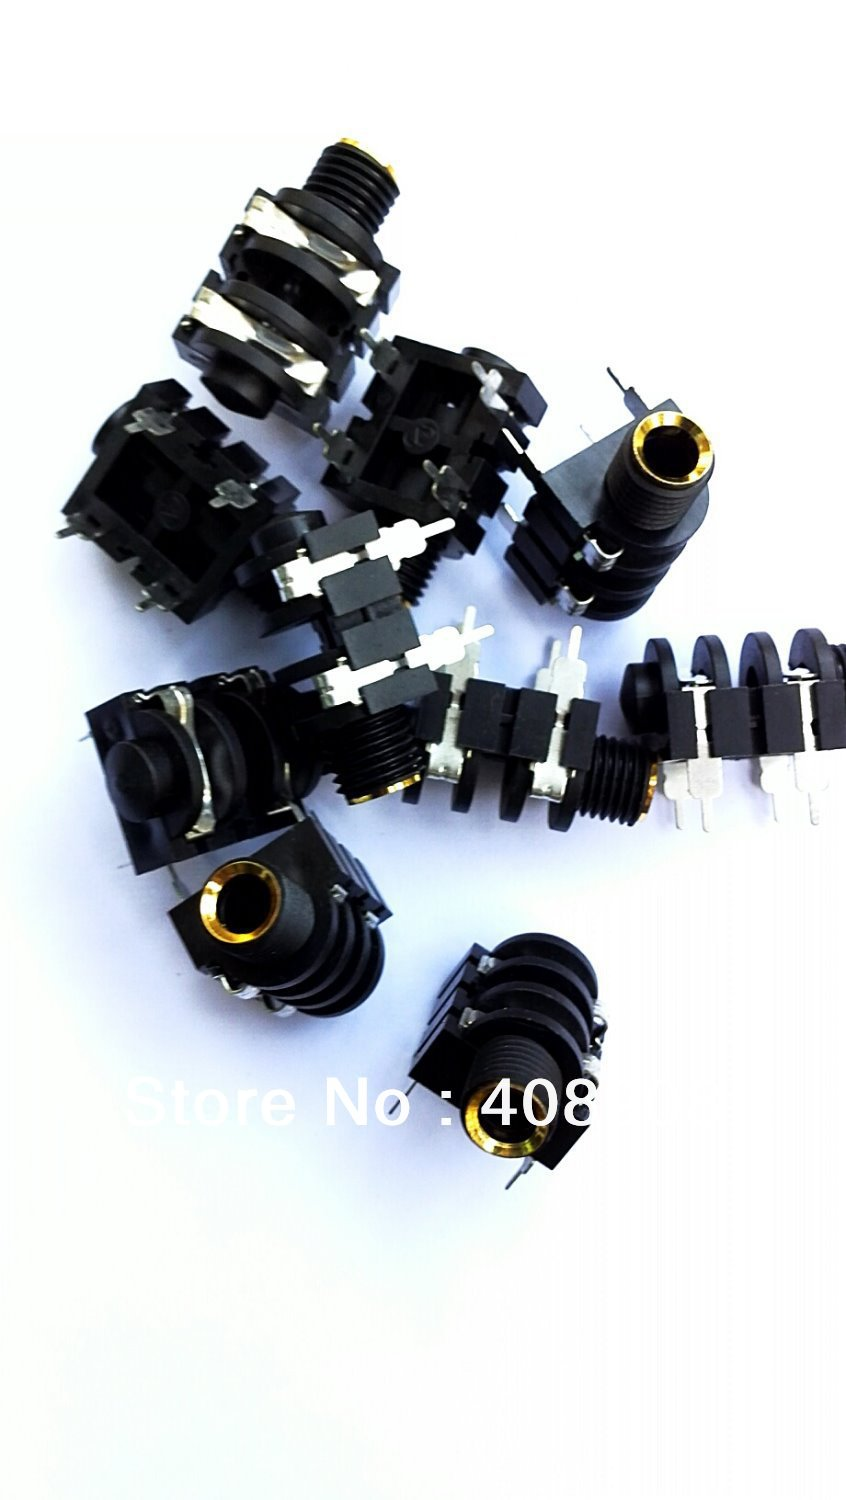 Wiring 1 4 Audio Jack Diagram Annavernon Com Gold Popular Mono Buy Cheap Lots 10pcs 6 35mm Headphone